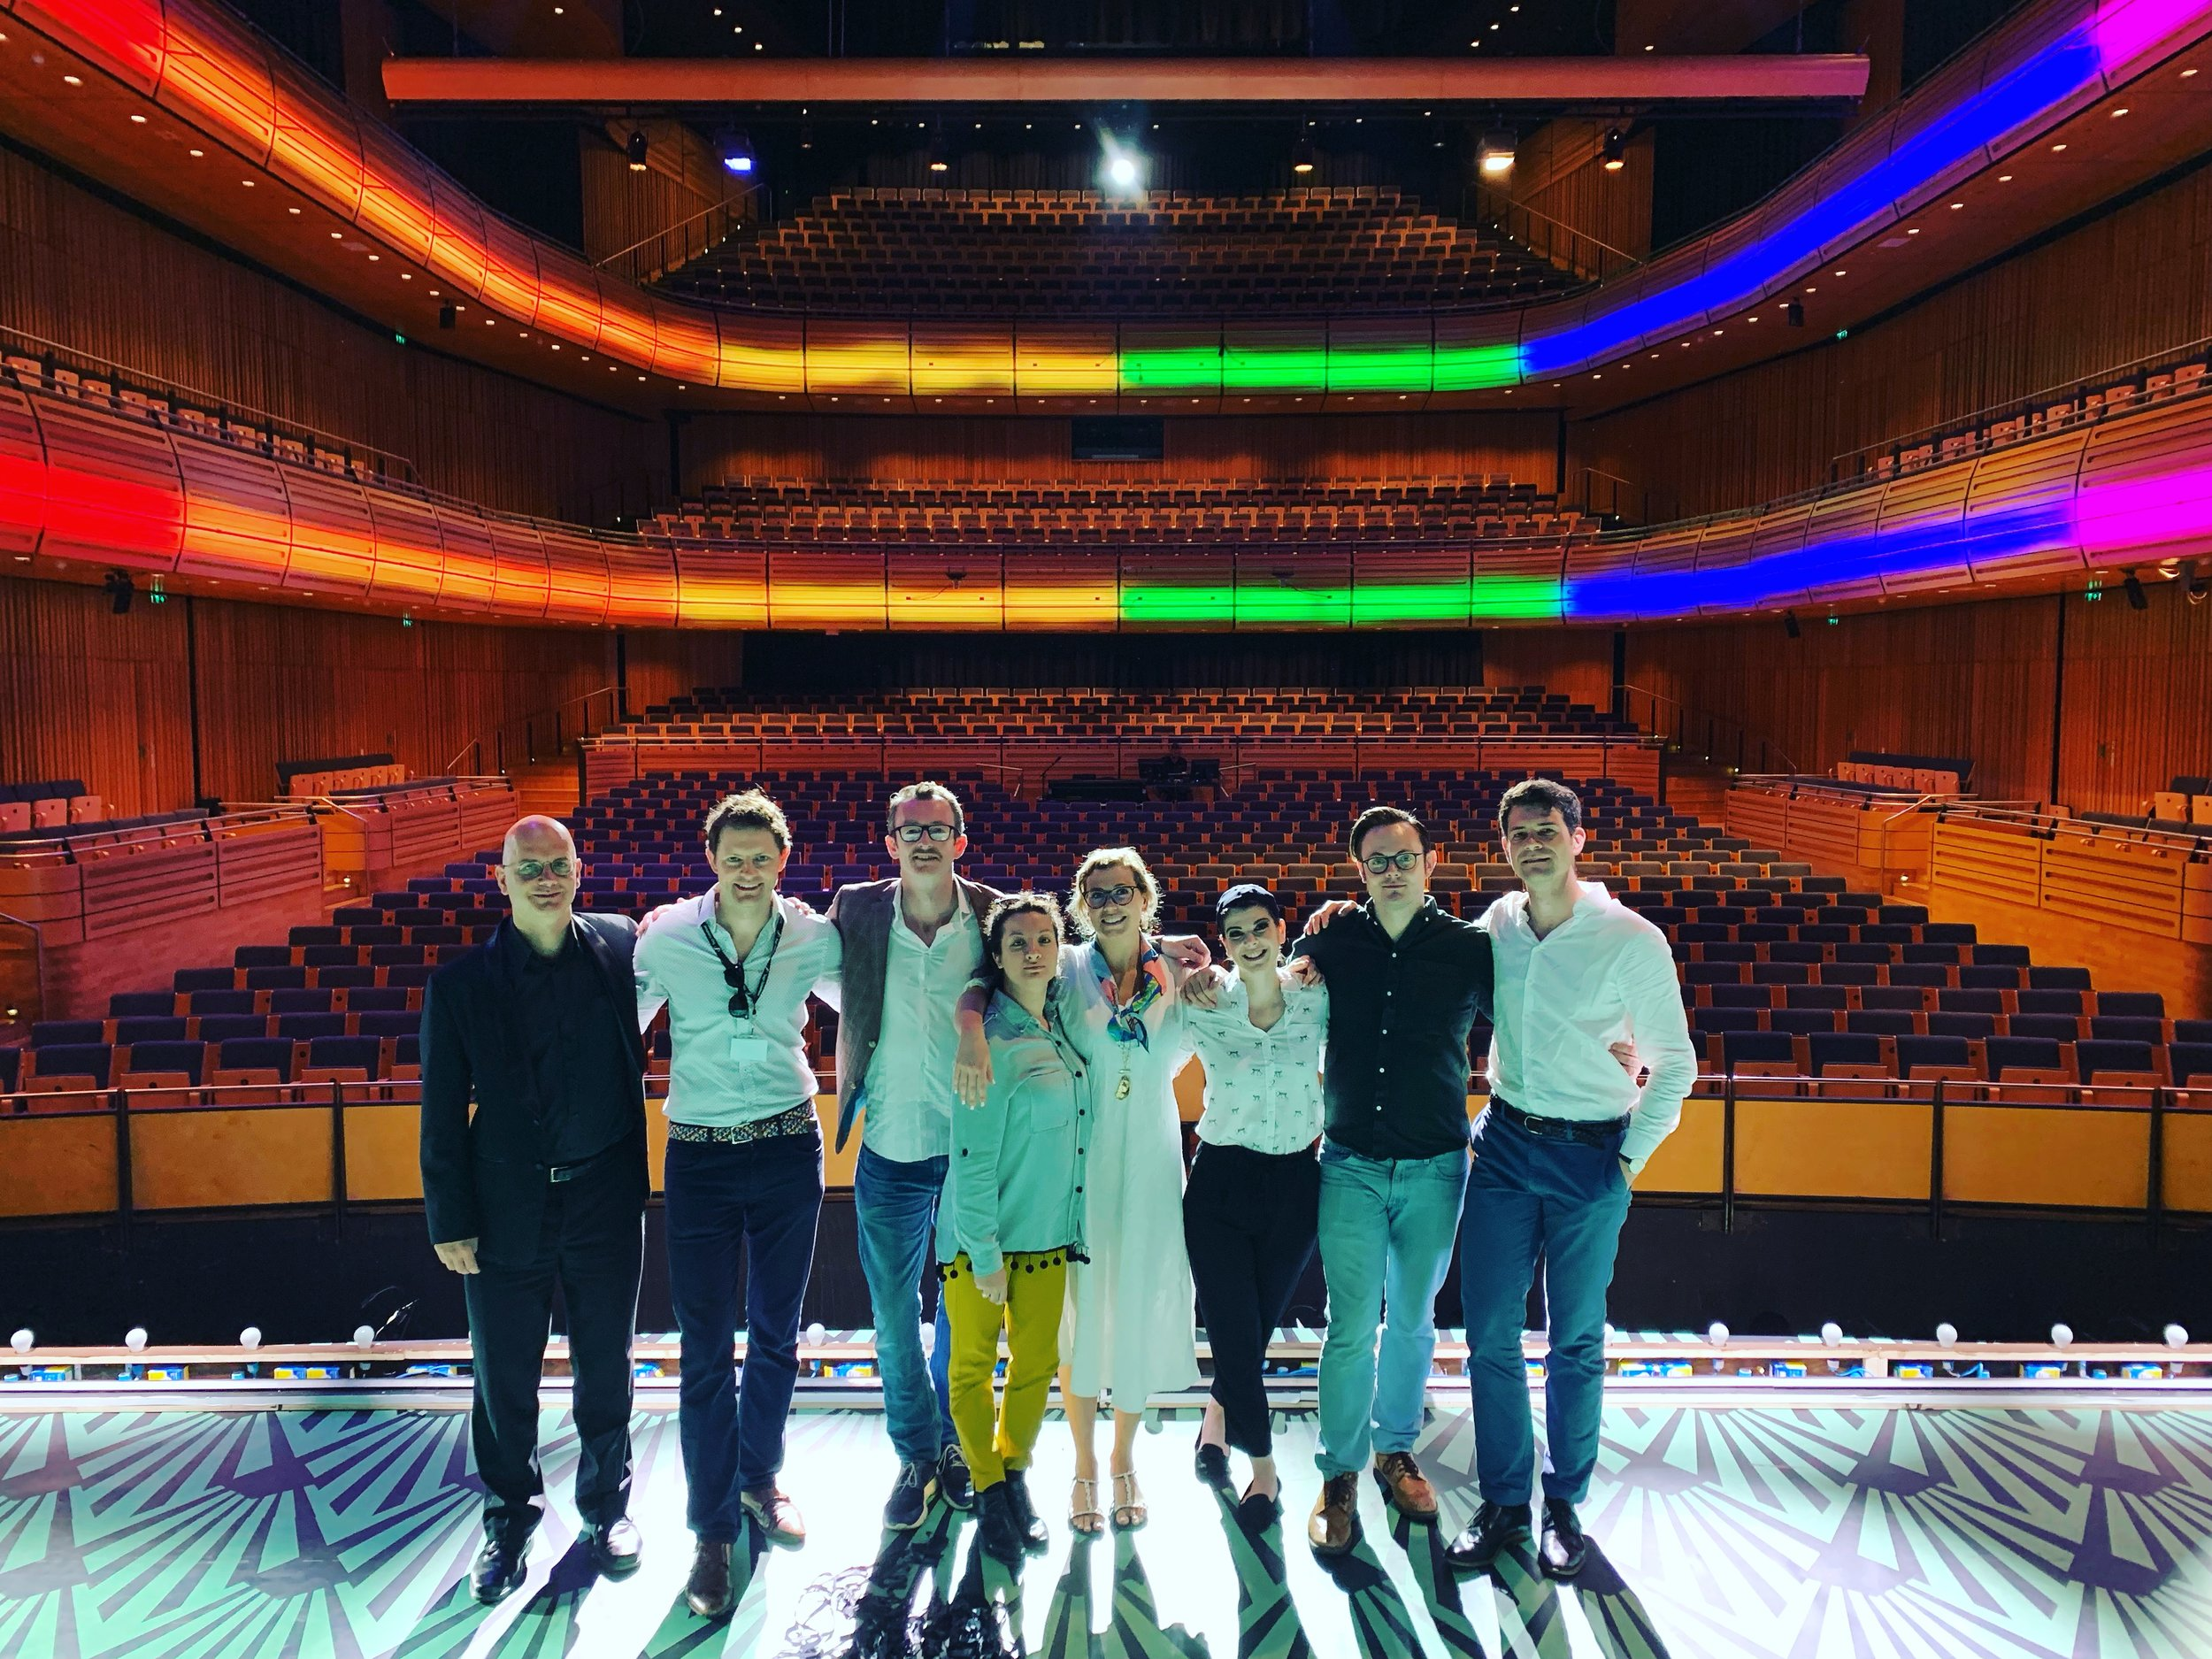 Nicholas with the cast of Così fan tutte on Stage at Sage Gateshead